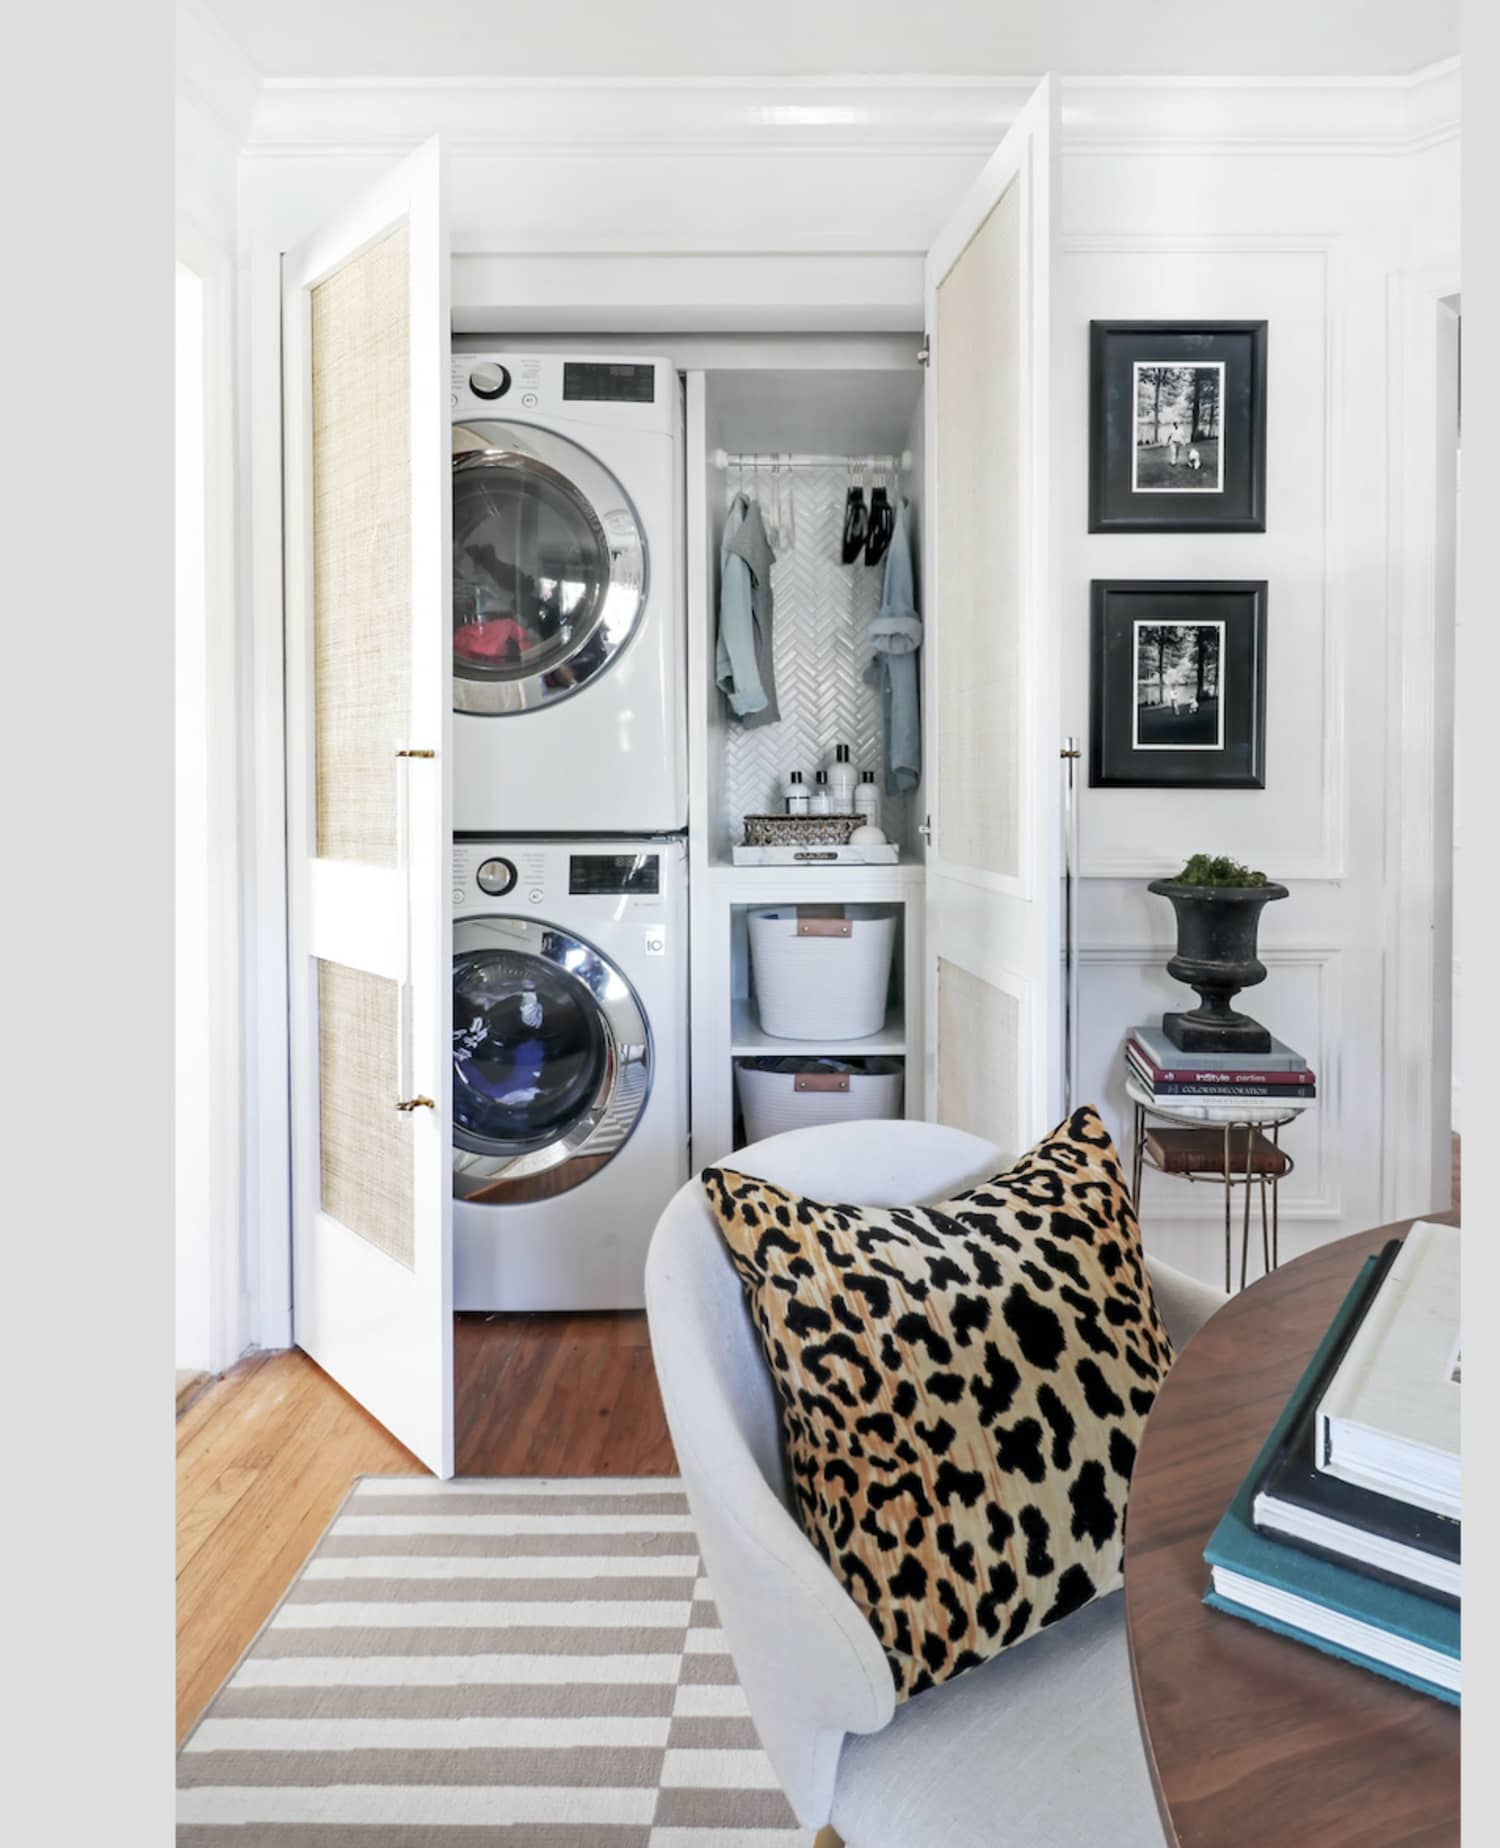 Clever Ideas for Laundry Room Storage - Tricks to Organize ... on Laundry Room Organization Ideas  id=50589